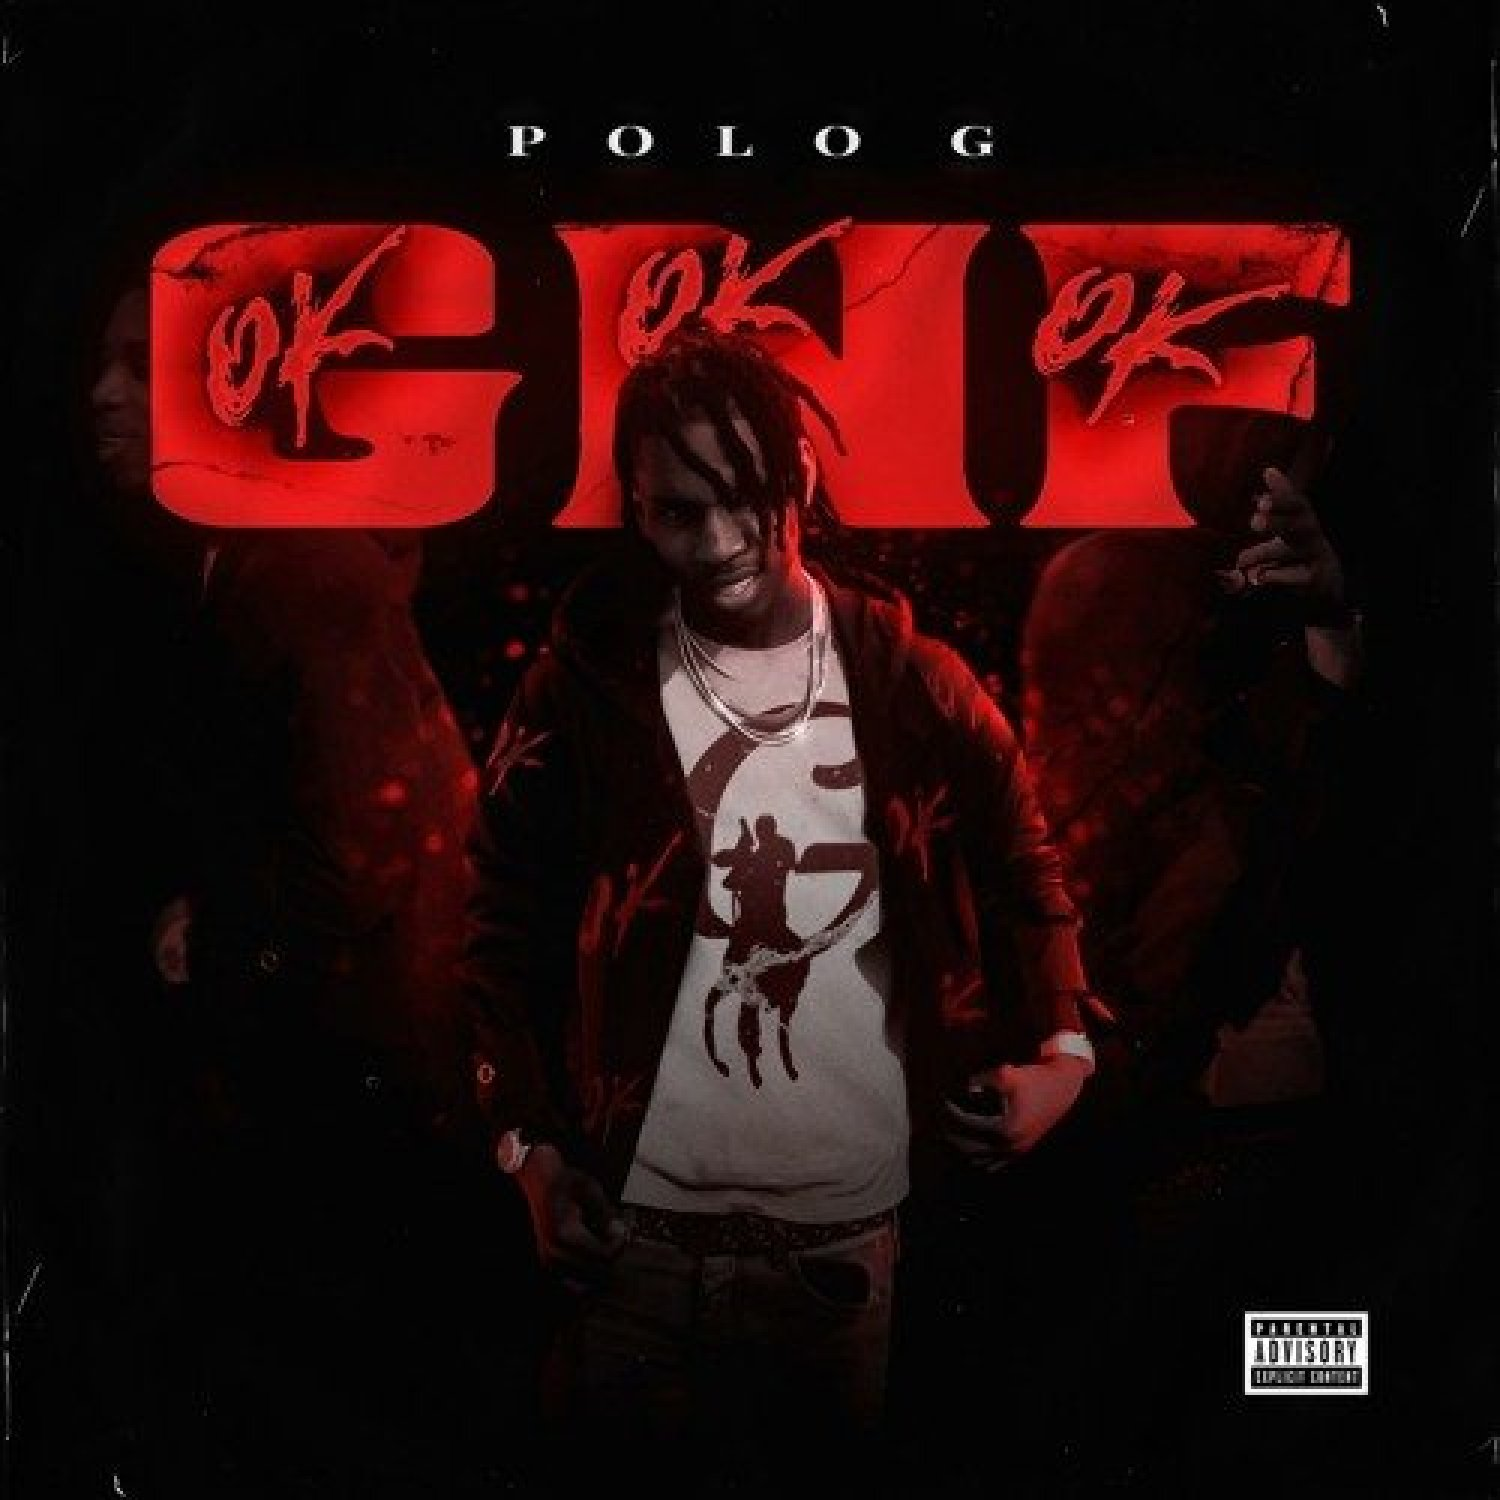 DOWNLOAD MP3: Polo G – GNF (OKOKOK) (Free MP3) AUDIO 320kbps